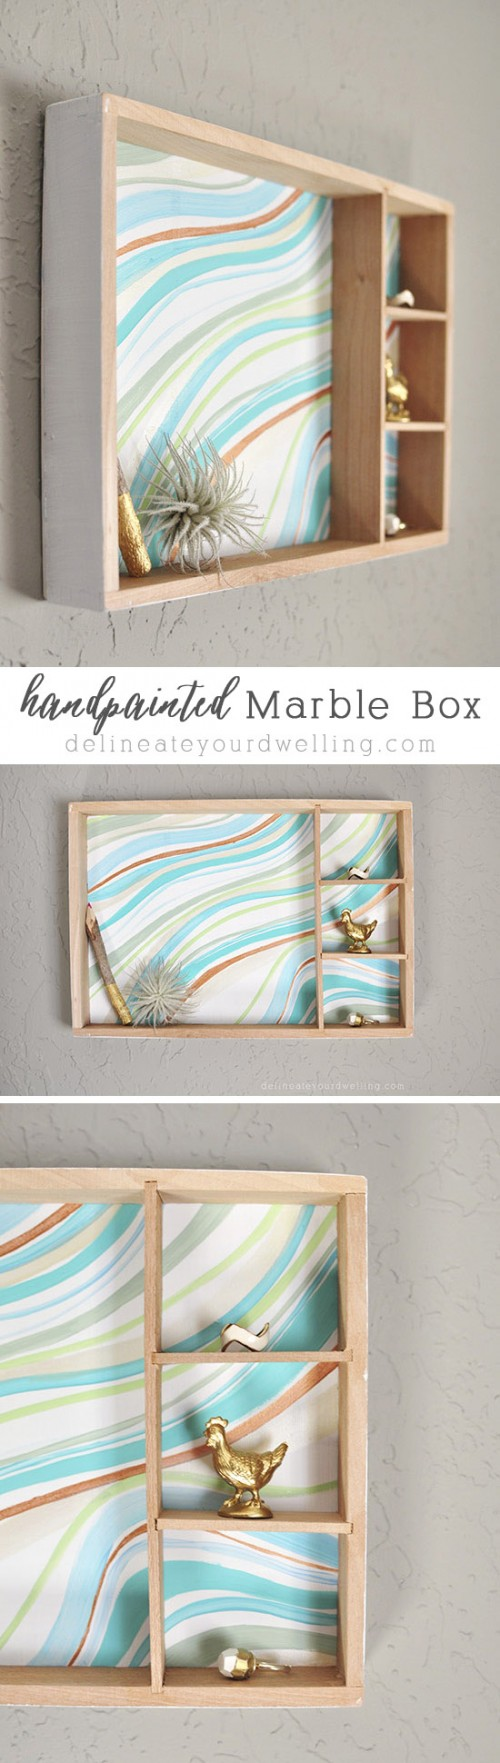 23 super trendy diy marble crafts for home décor - shelterness